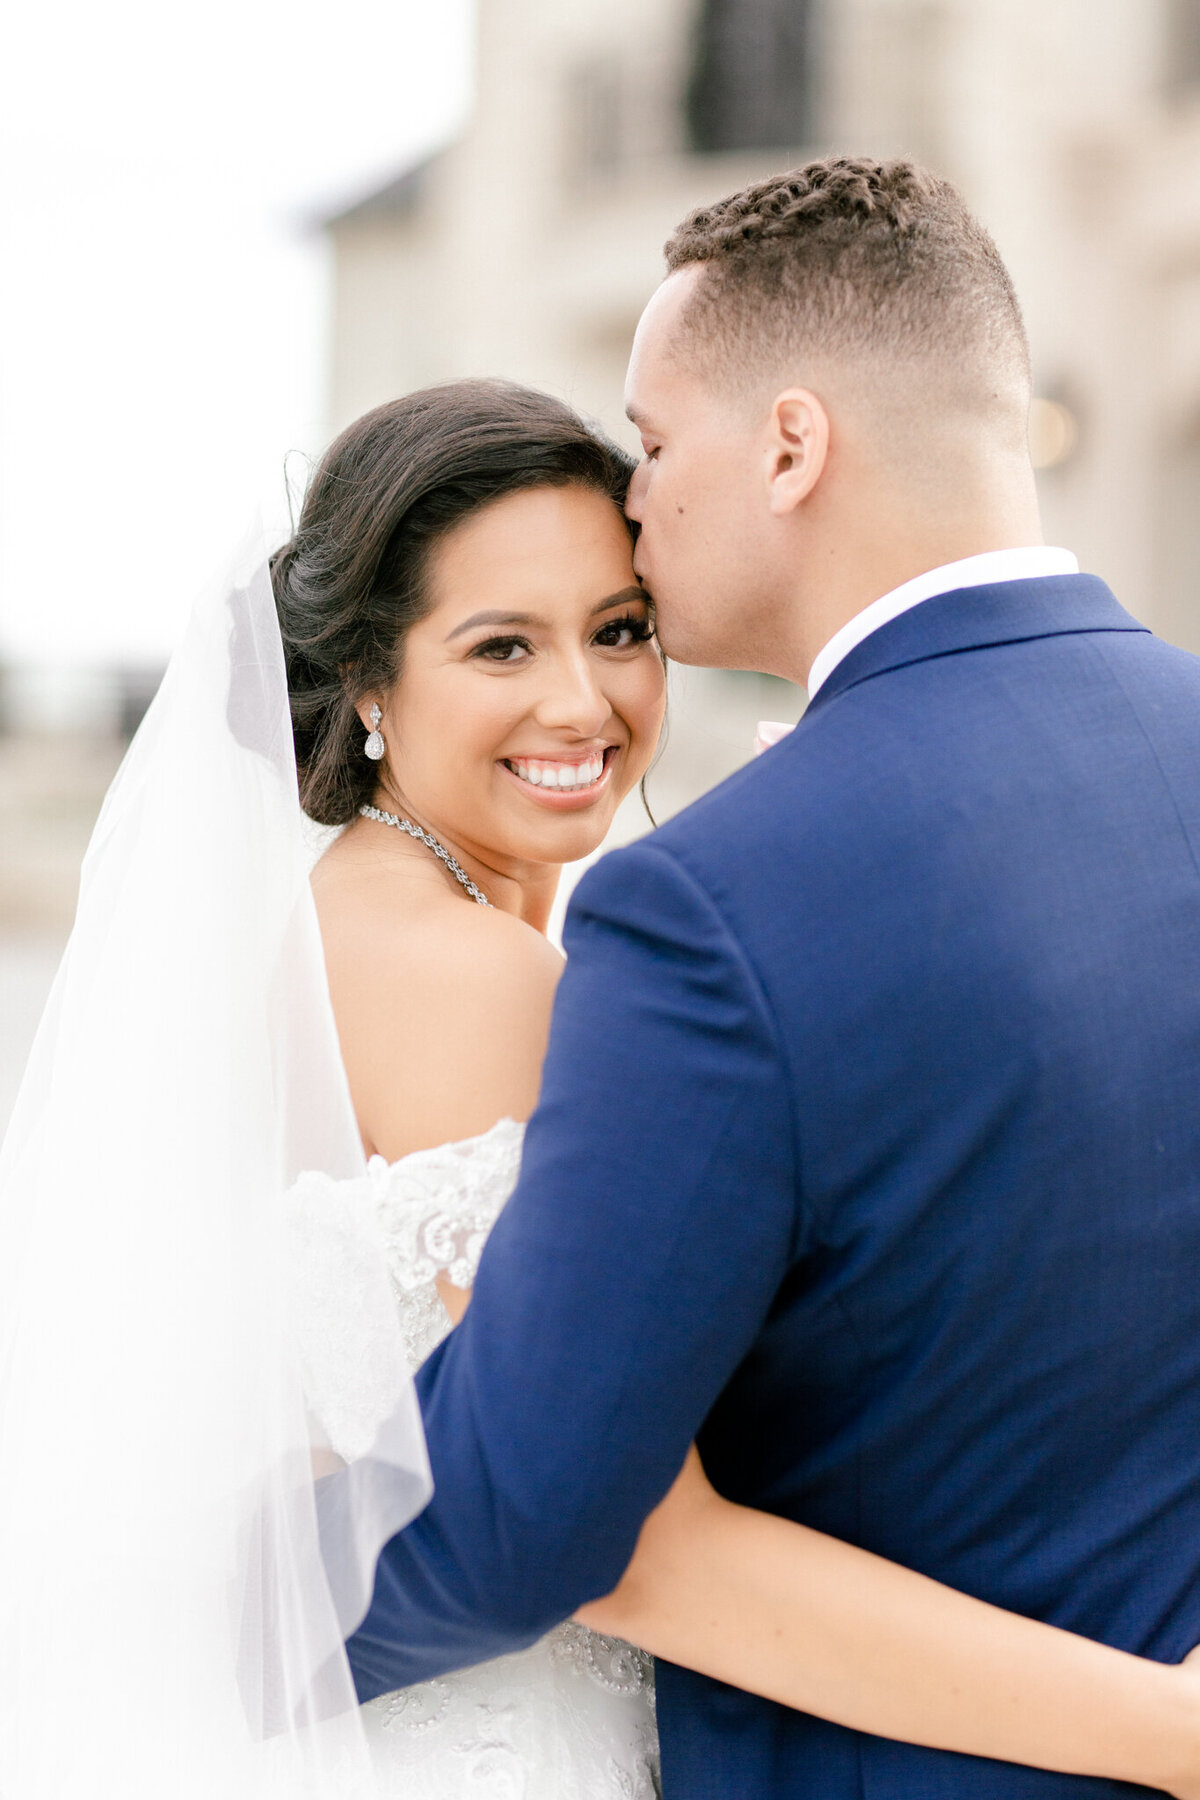 Jasmine & Josh Wedding at Knotting Hill Place | Dallas DFW Wedding Photographer | Sami Kathryn Photography-100